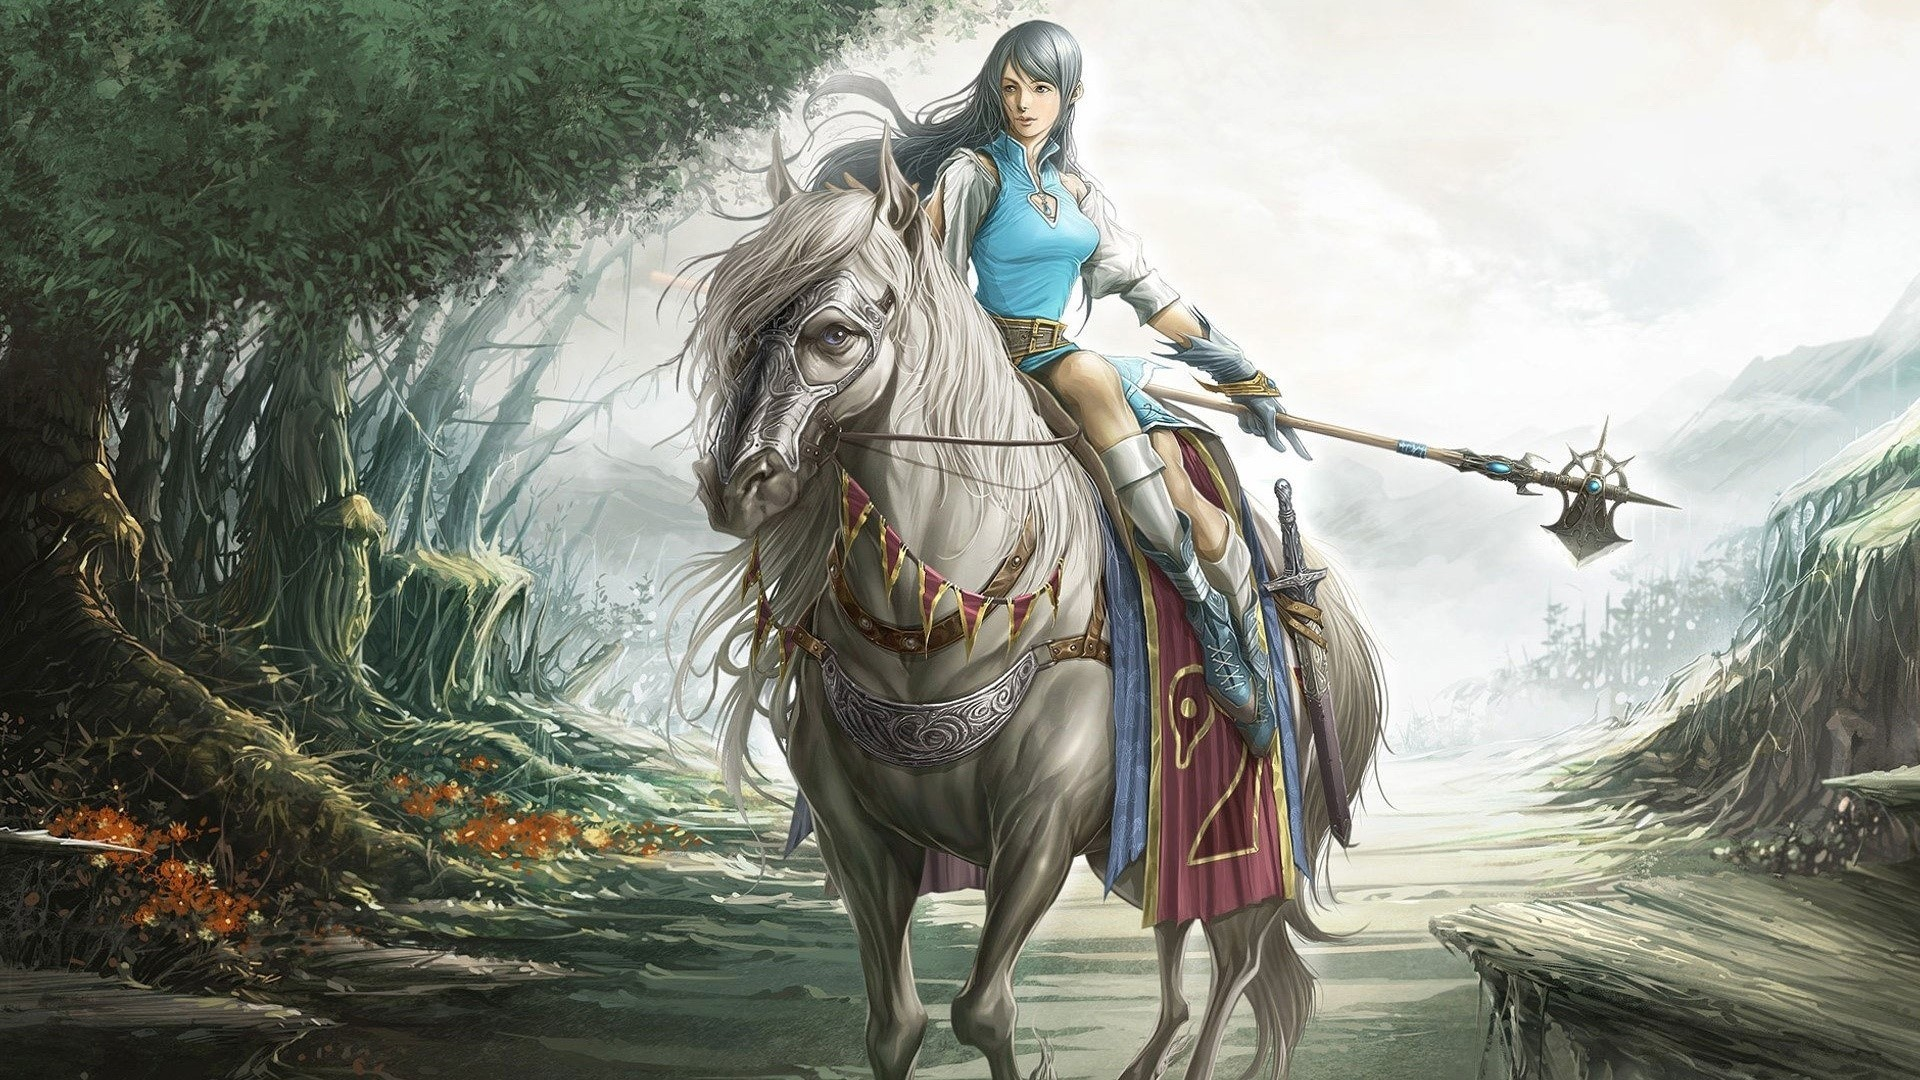 Rider On A Horse Art HD Wallpaper